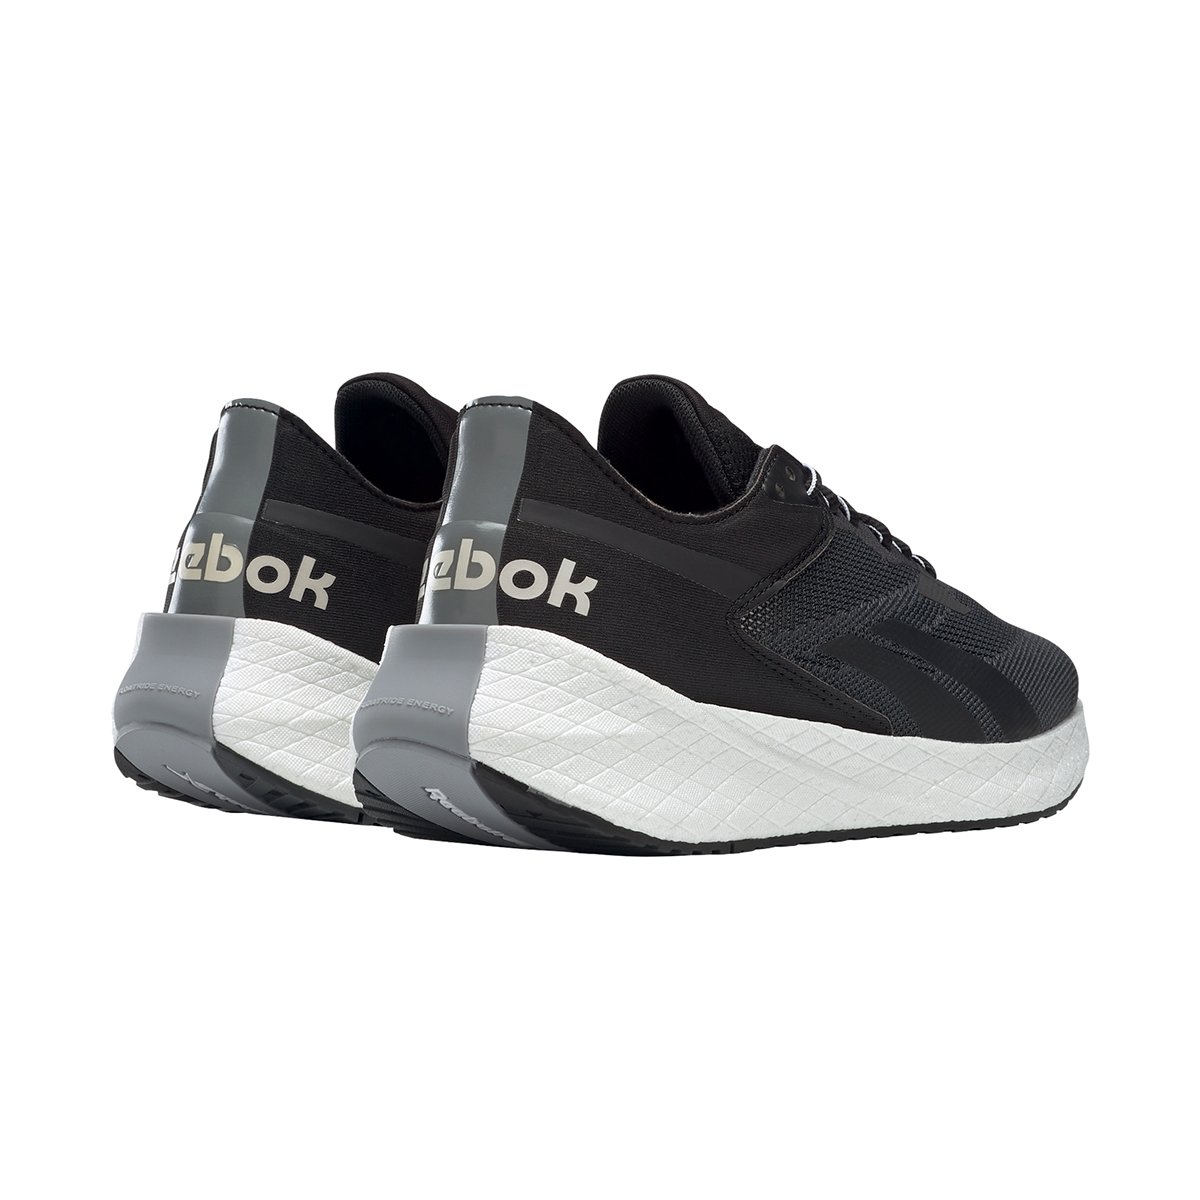 Women's Reebok Floatride Energy Symmetros Running Shoe - Color: Black/Cold Grey/Cool Shadow - Size: 6 - Width: Regular, Black/Cold Grey/Cool Shadow, large, image 4